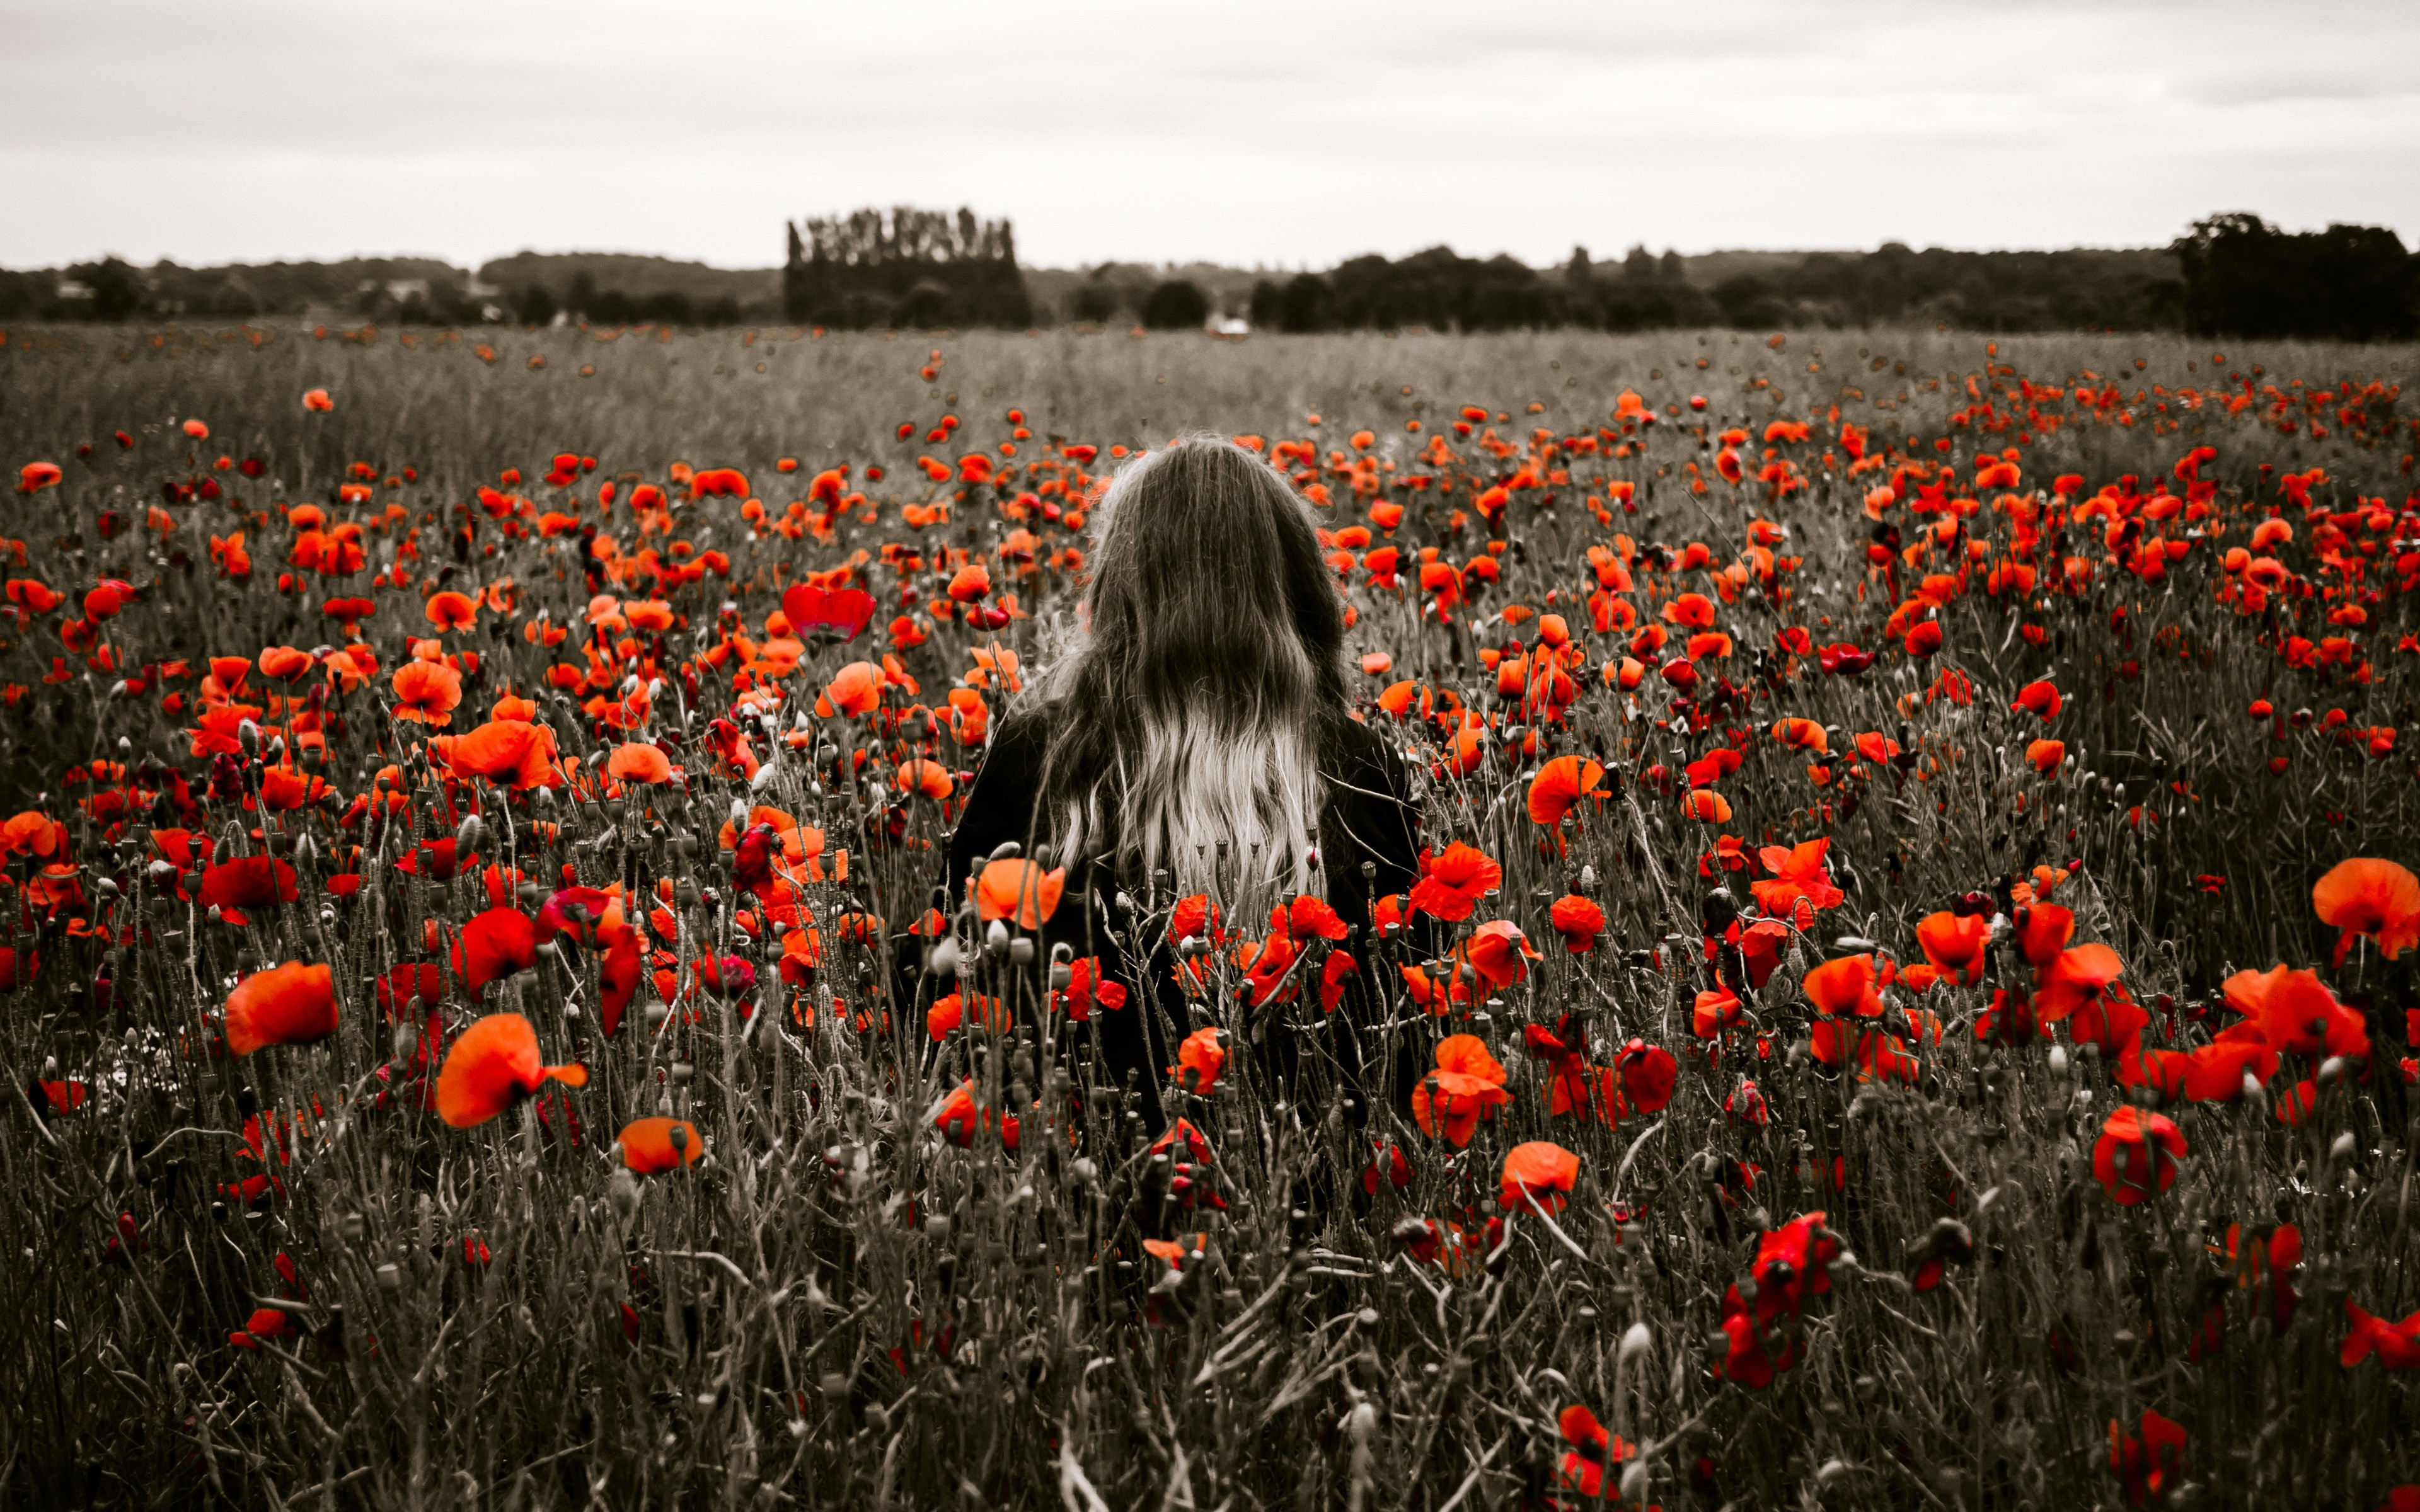 Girl in the field with red poppies wallpaper 3840x2400